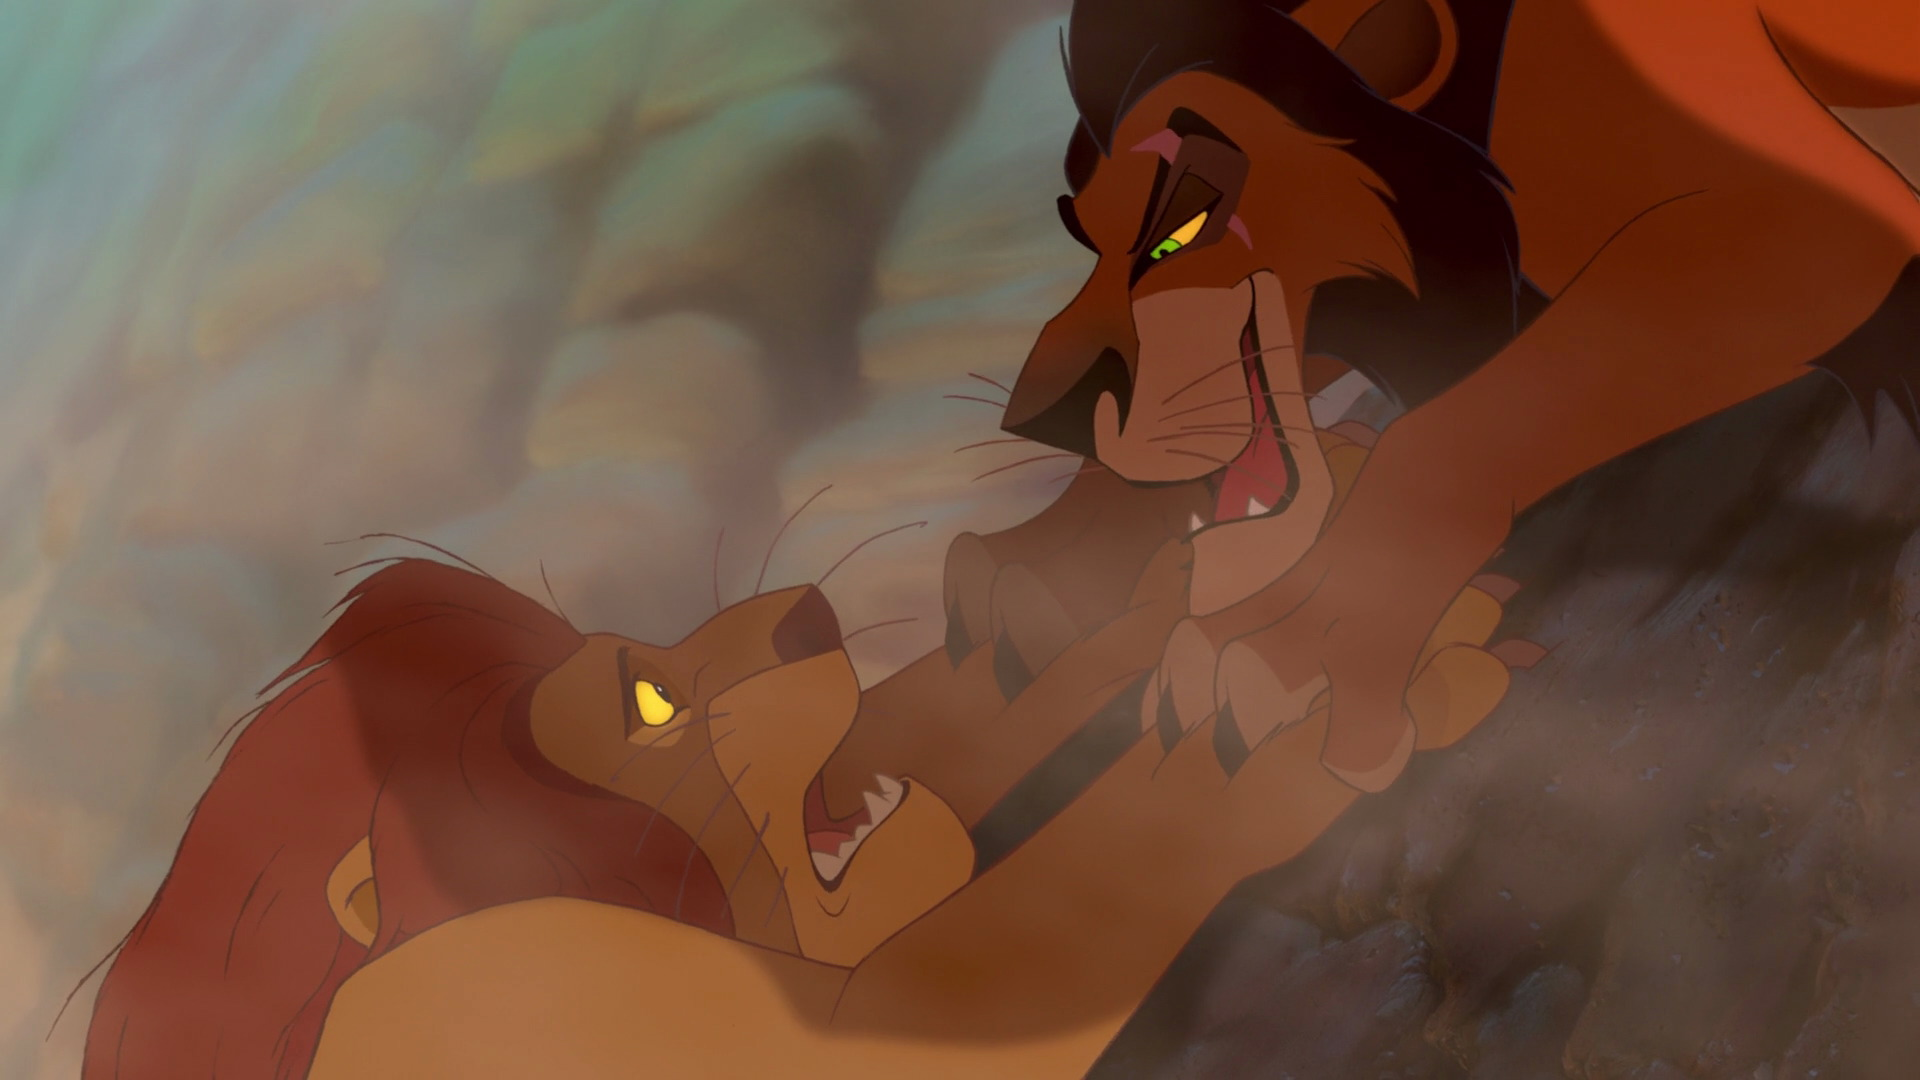 Mufasa-vs-Scar-the-lion-king-2801551-640